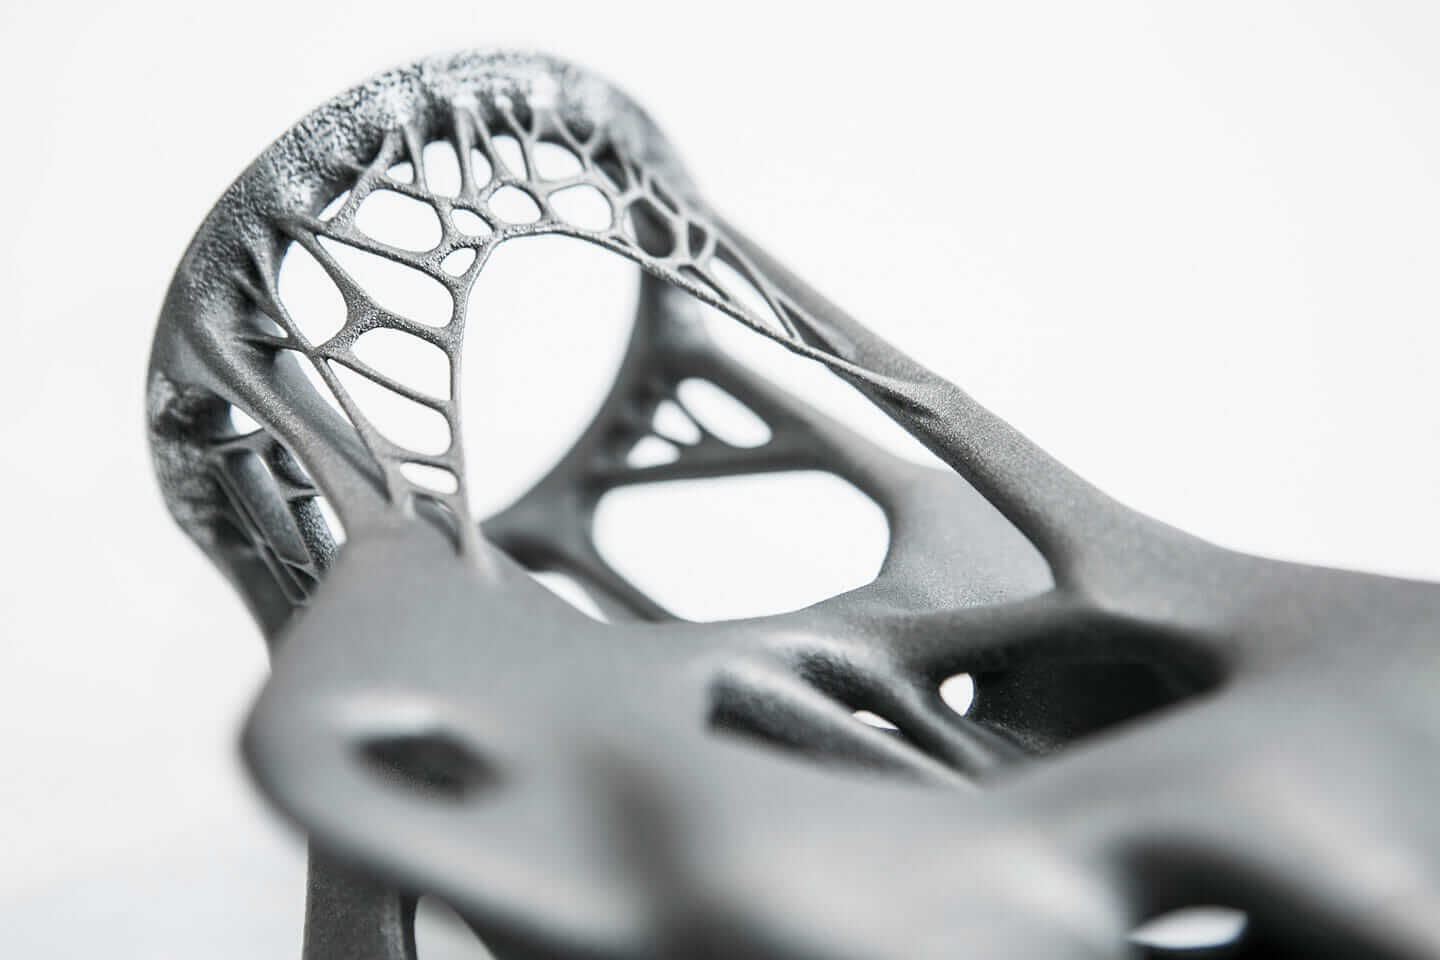 generative design for sculptural joint